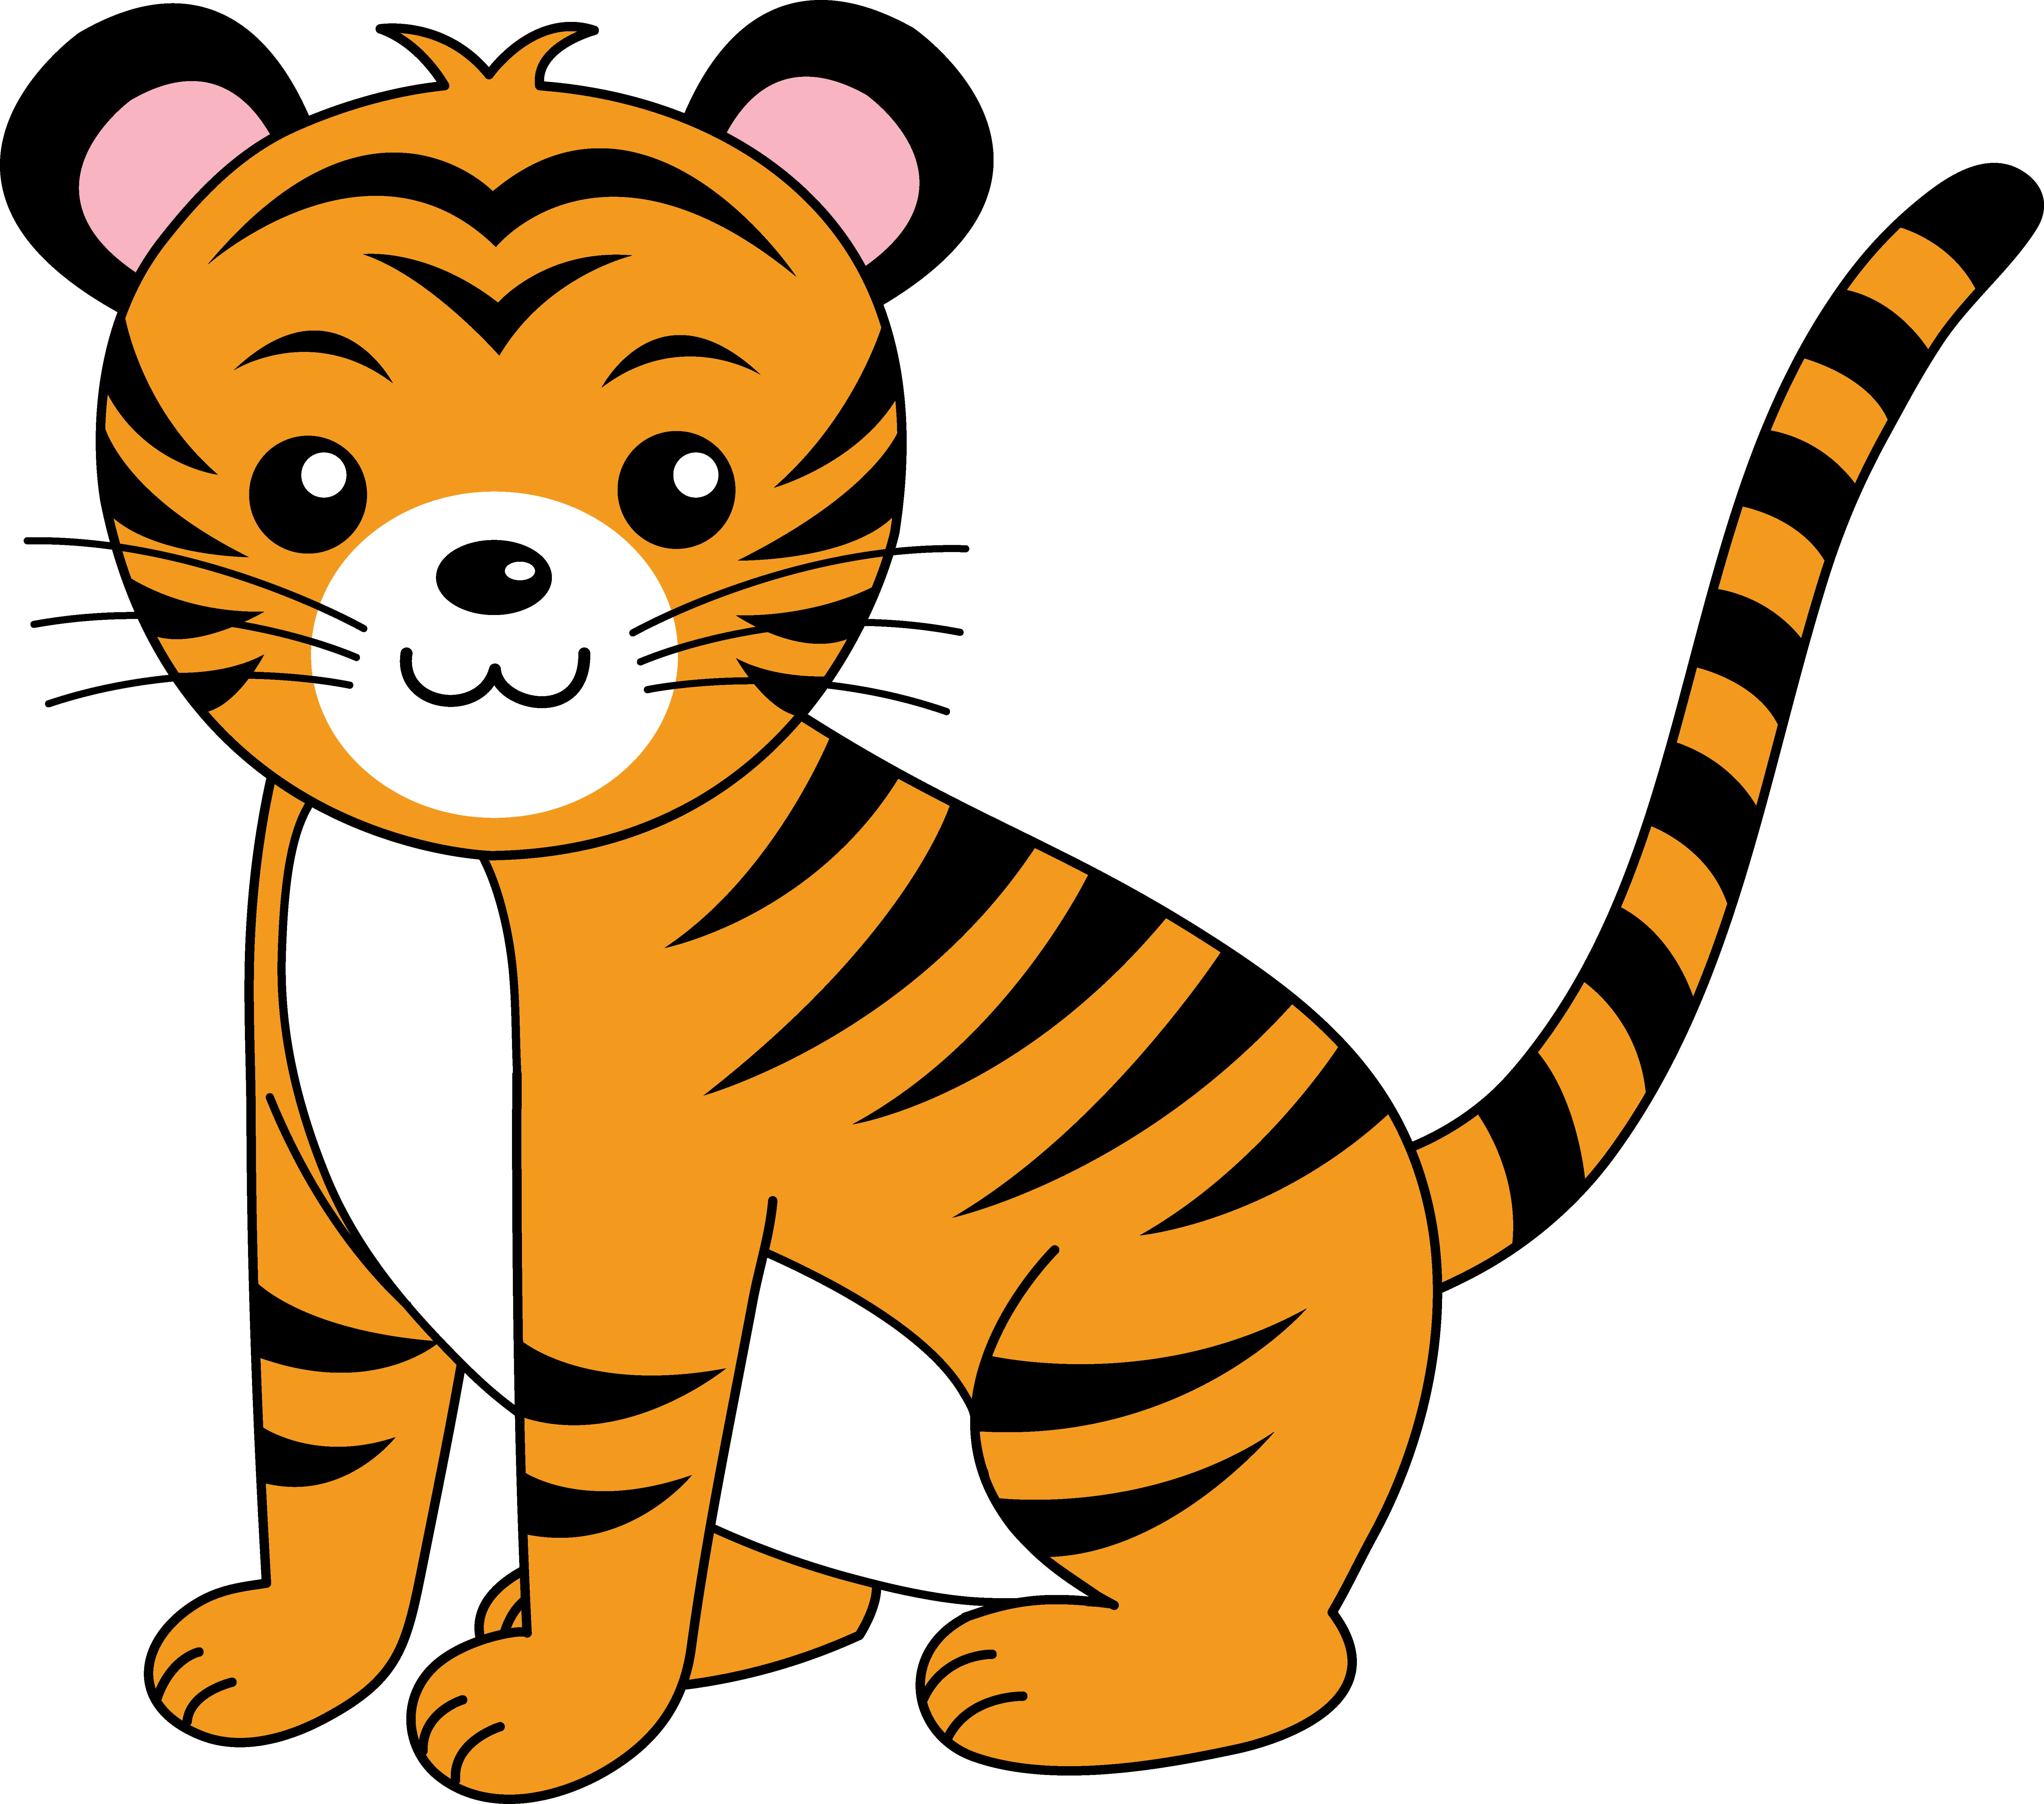 Clip art zoo animals | Clipart library - Free Clipart Images - Free PNG HD Zoo Animals